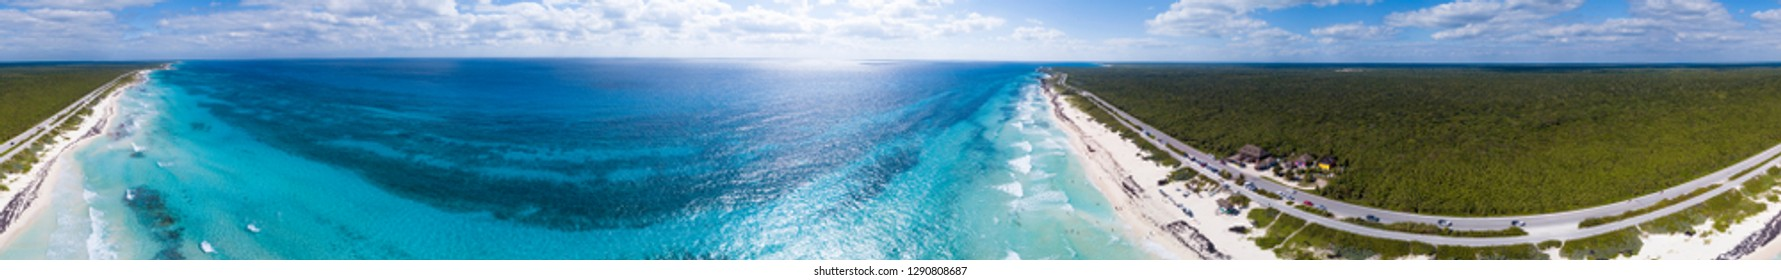 360 degree aerial panorama of beaches on the east side of Cozumel, Mexico.